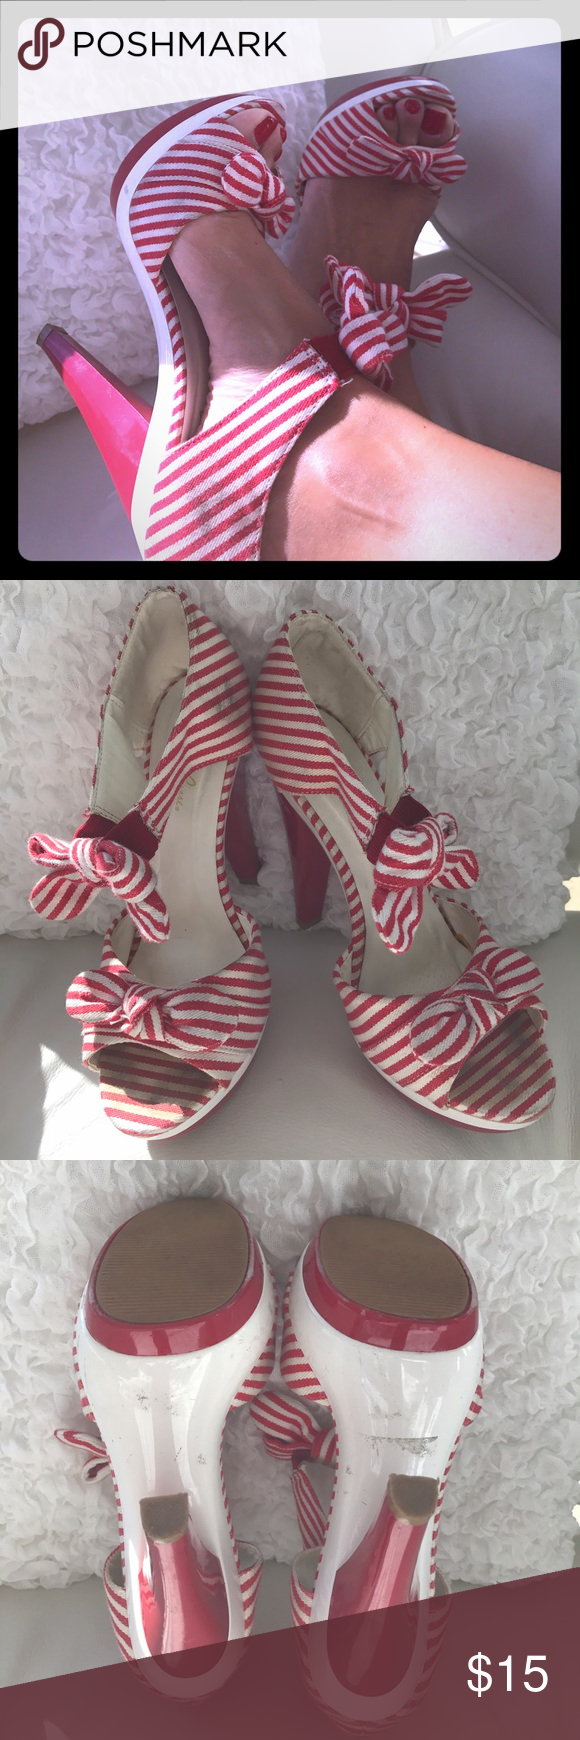 Stripes shoes Nice cloth stripe shoes, white and red. Used with some spots Charlotte Russe Shoes Heels